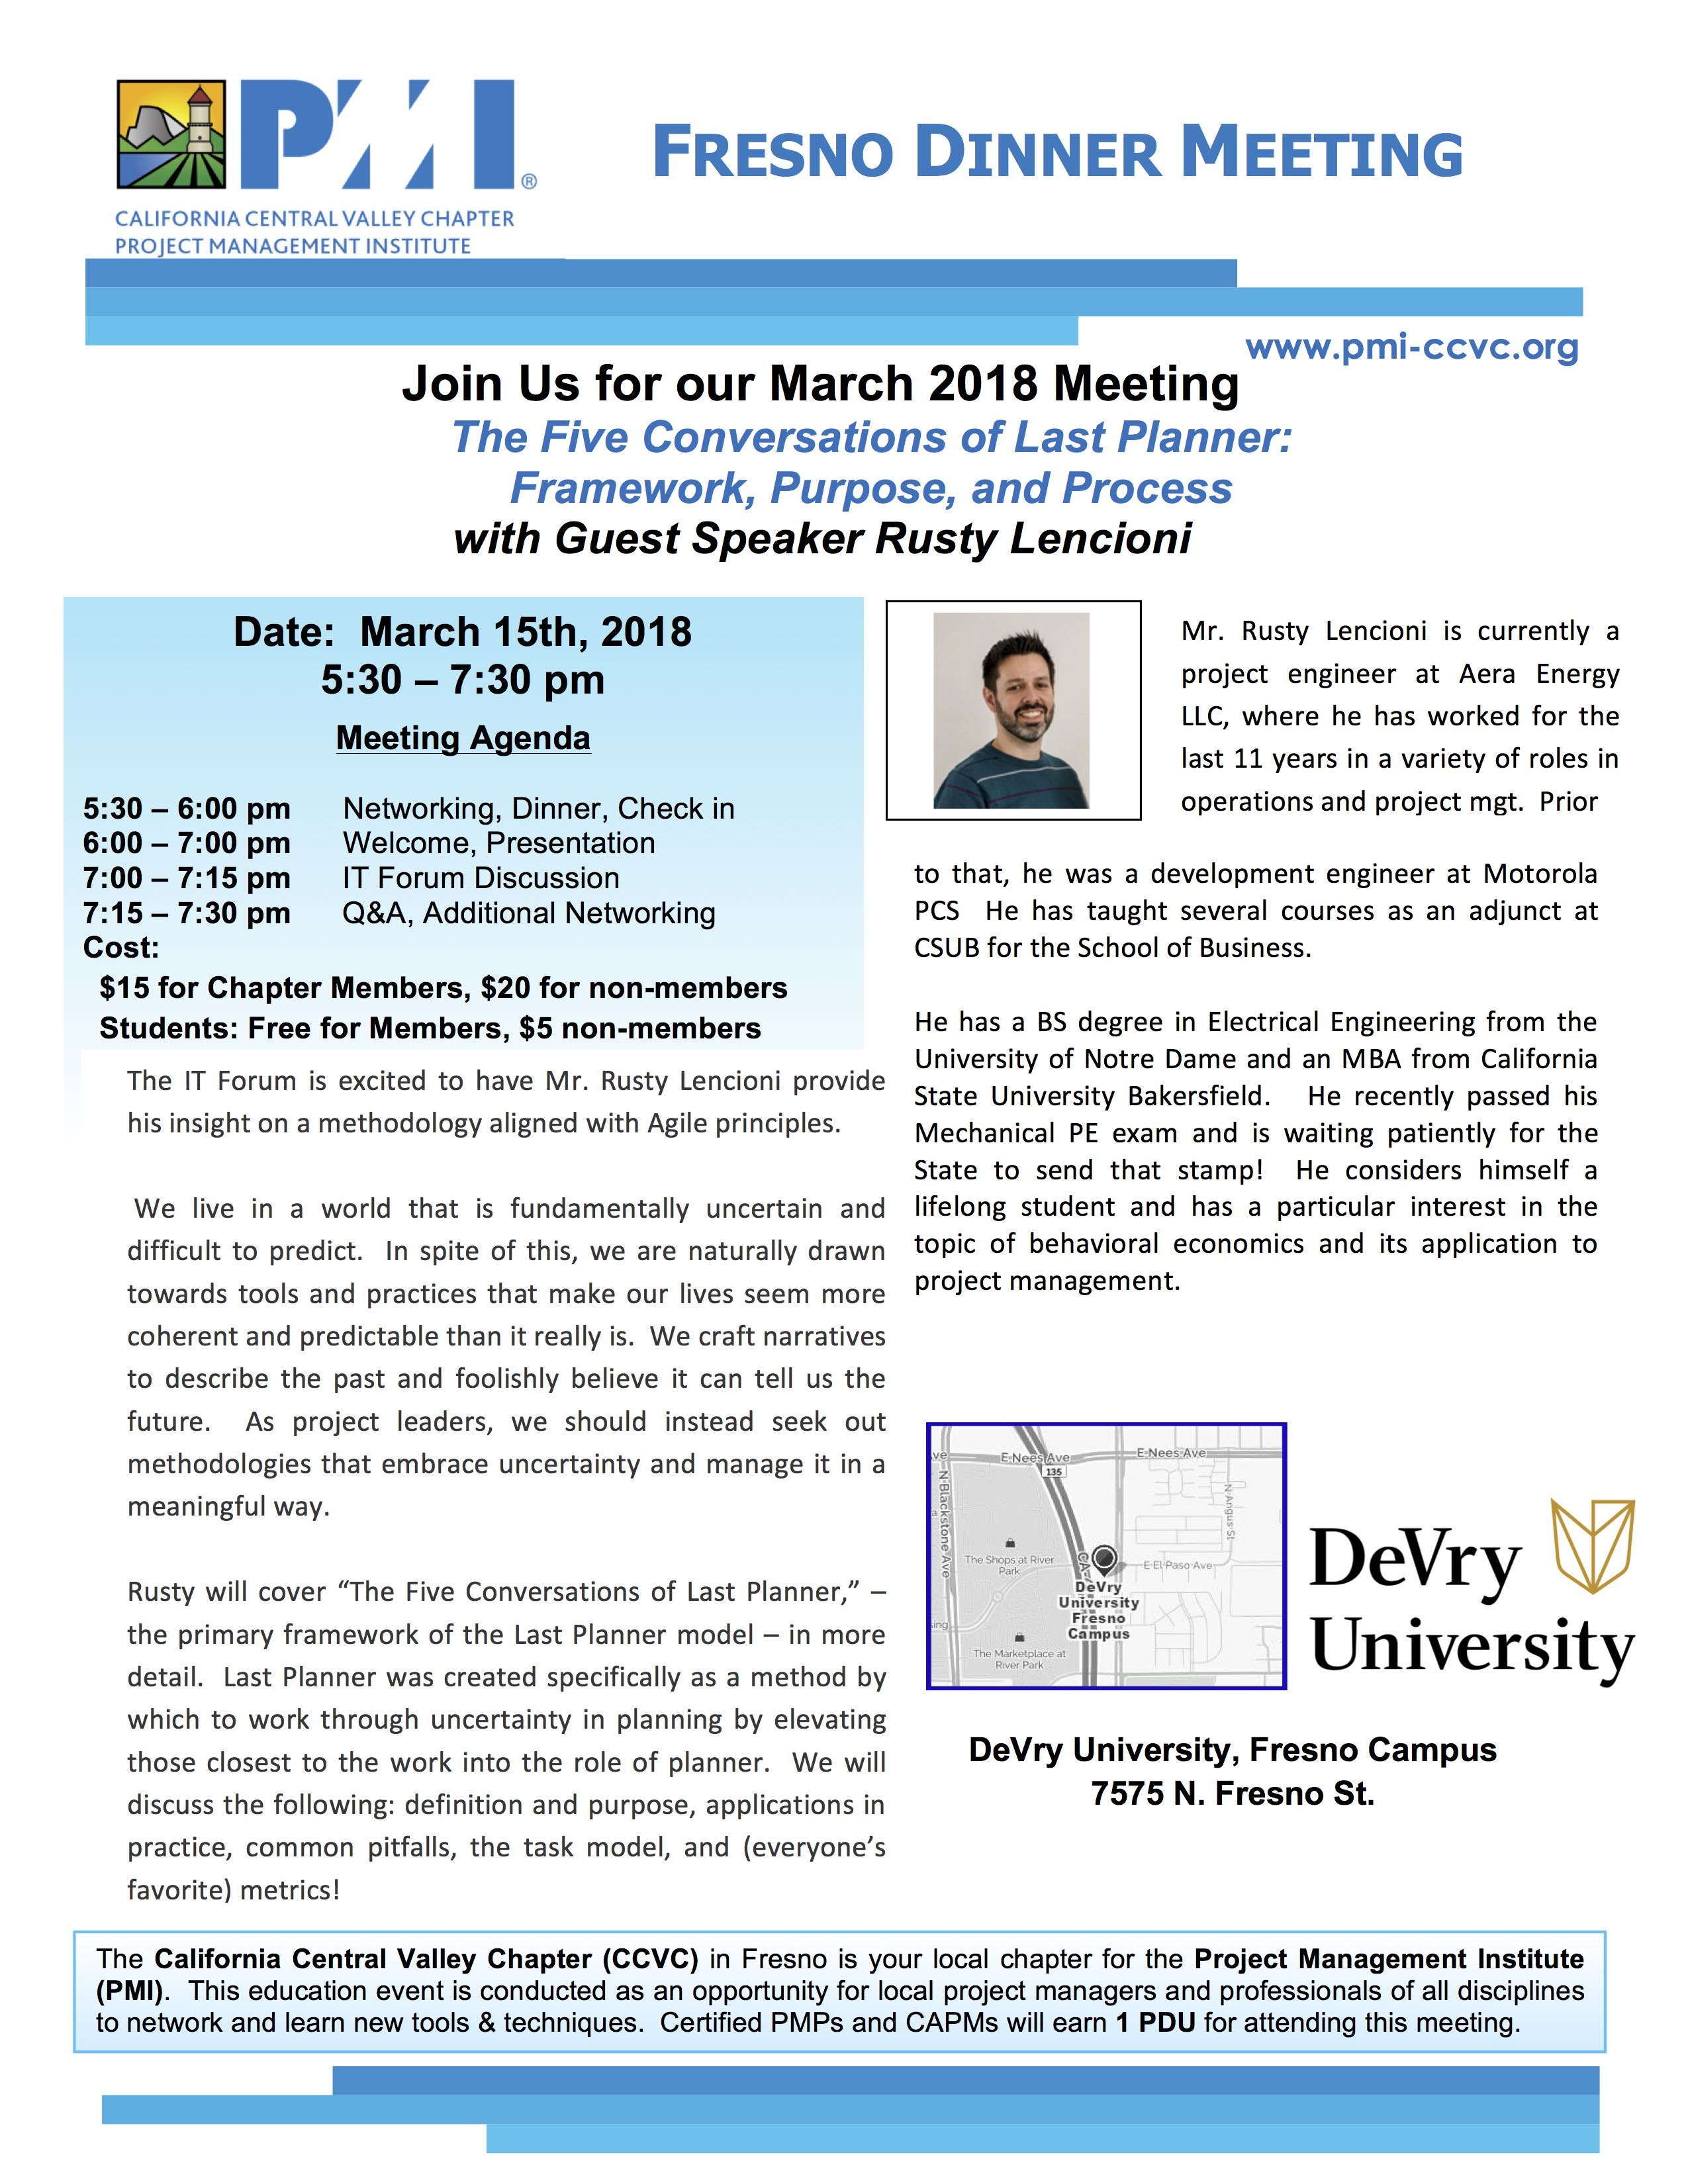 March 15 2018 Fresno Dinner Meeting Flyer